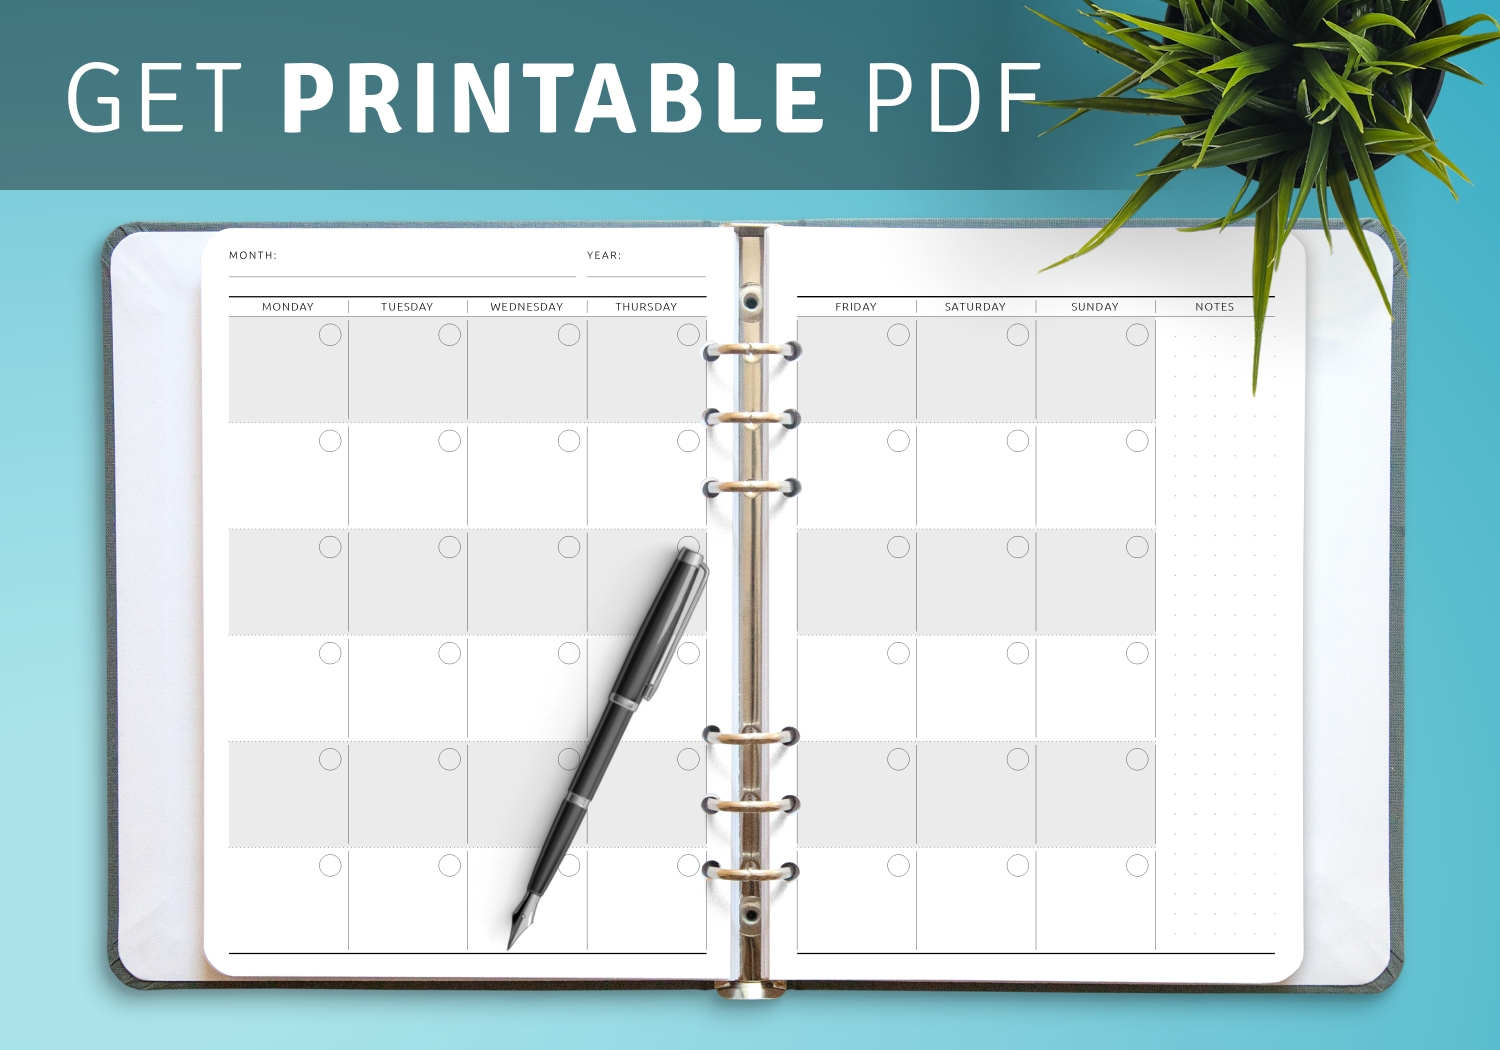 Download Printable Monthly Calendar Planner Undated